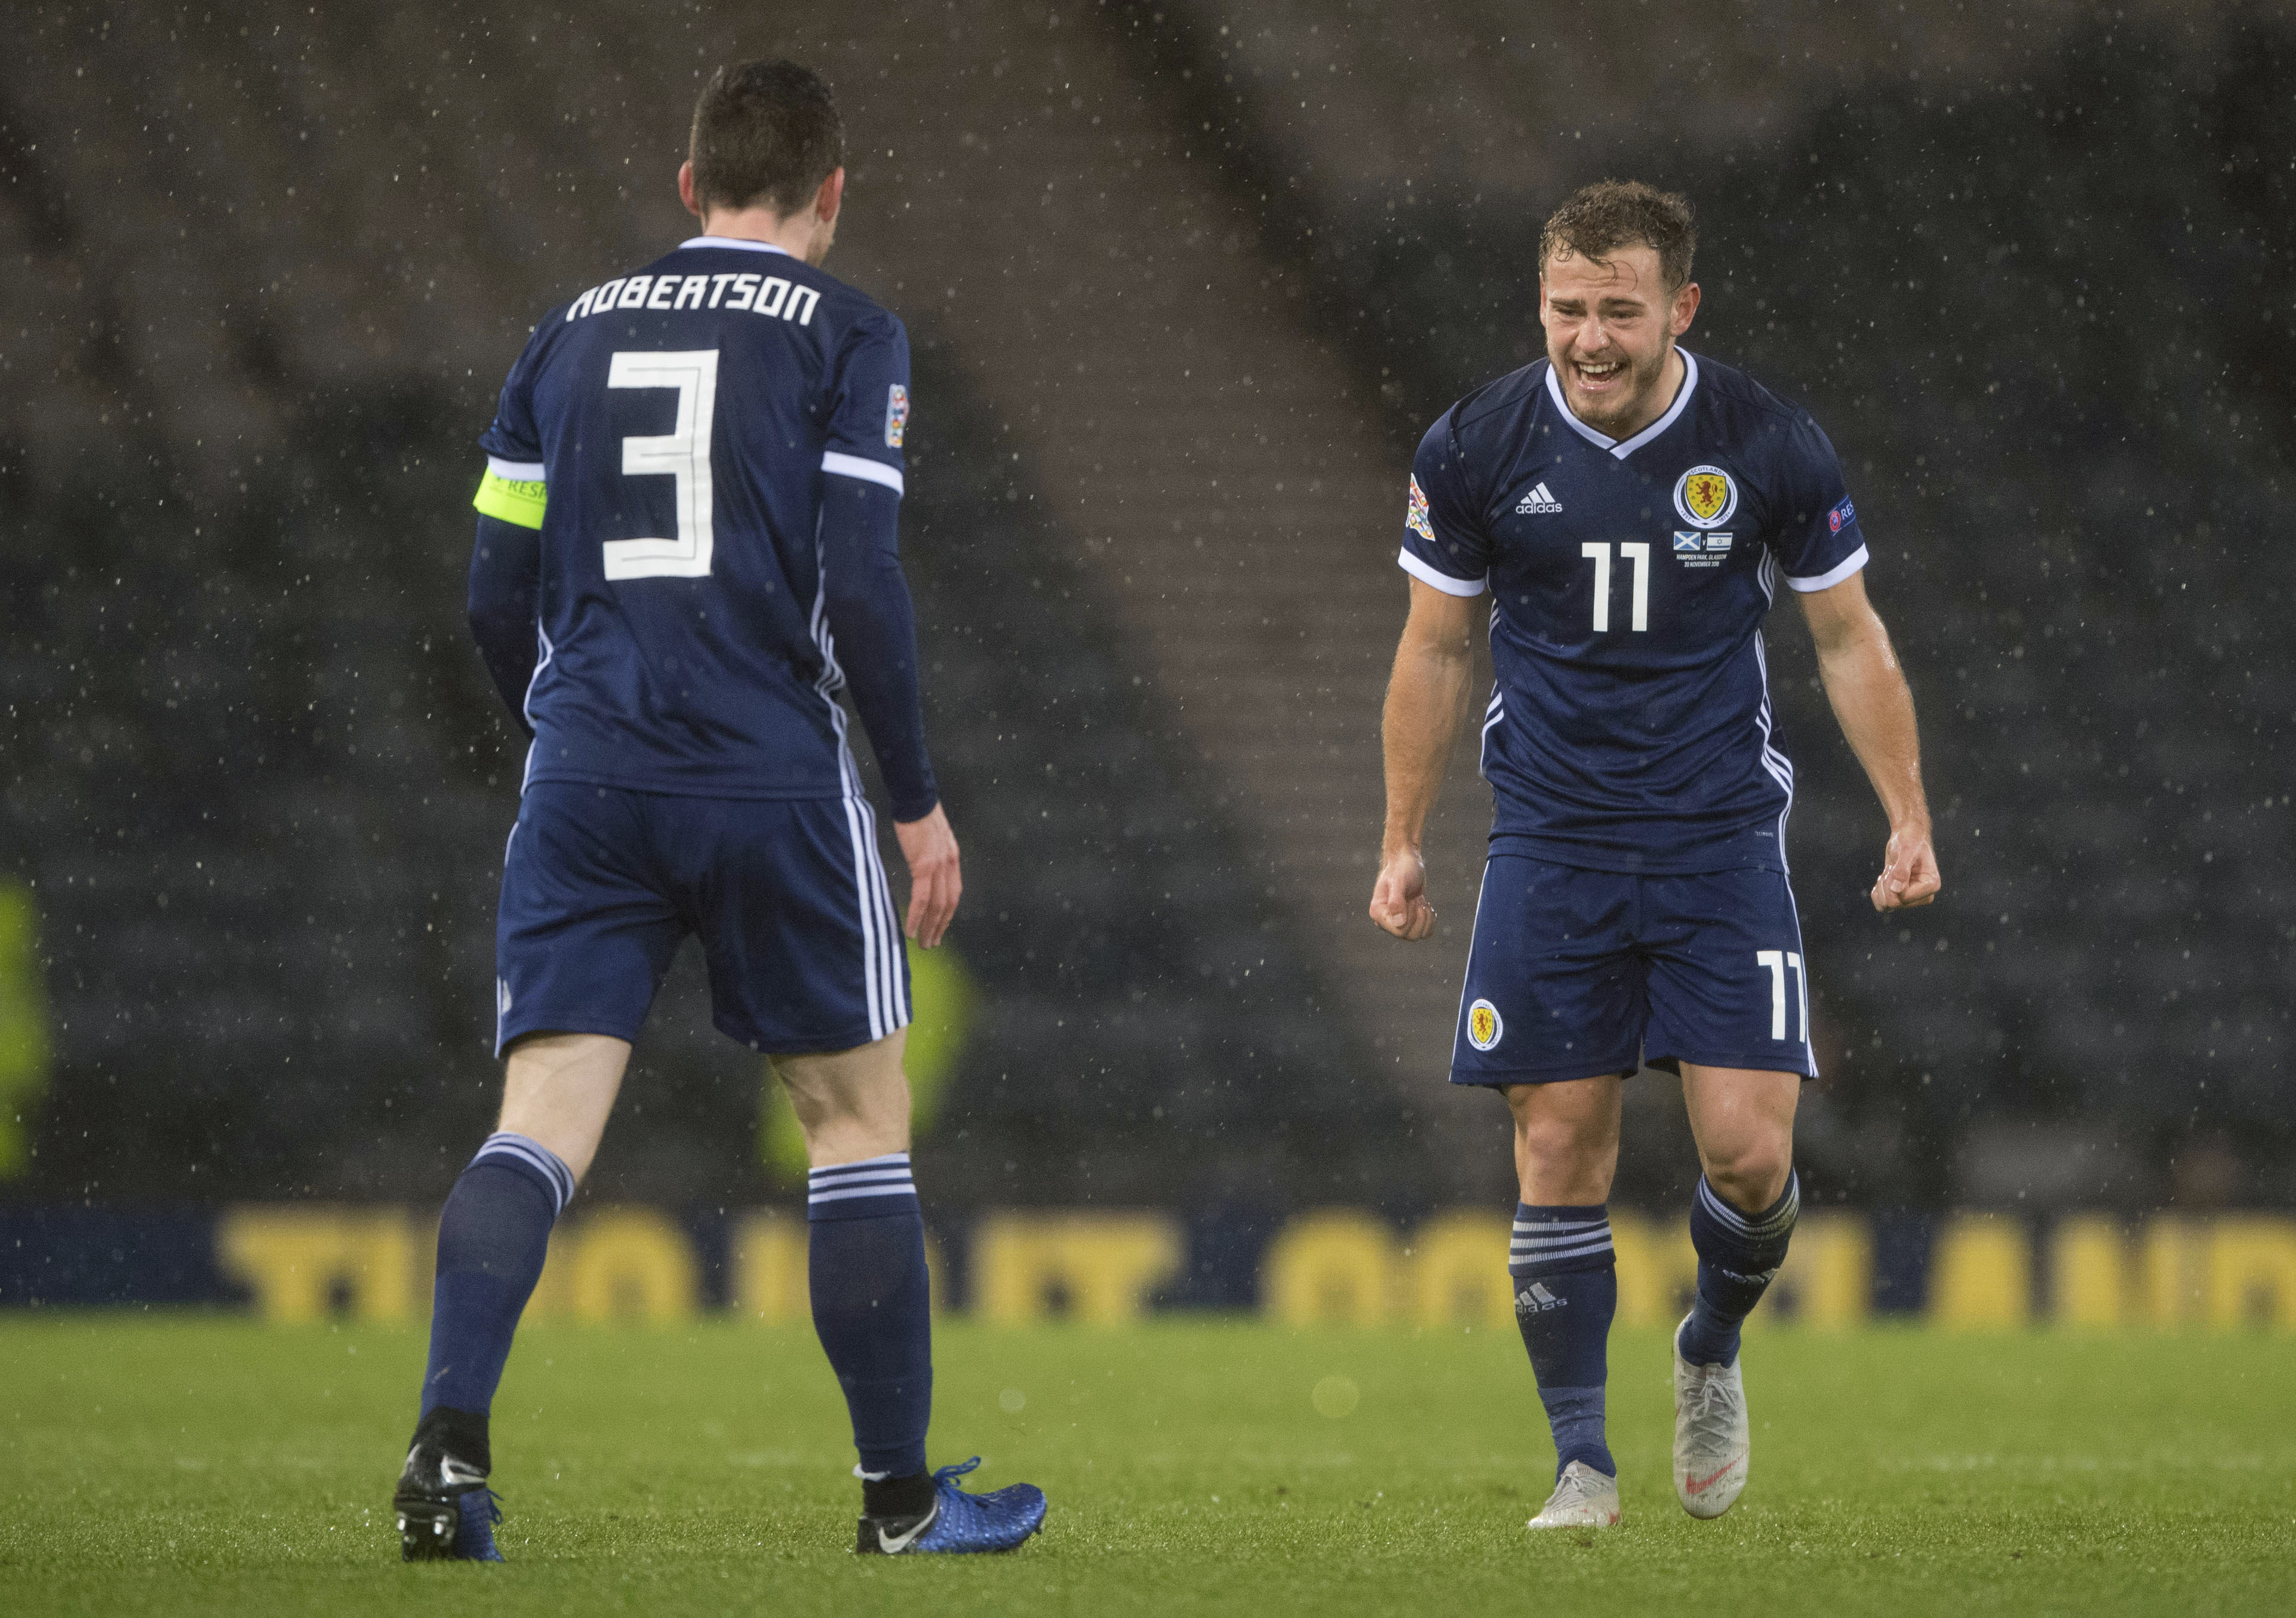 McLeish led Scotland to a Nations League group win over Israel and Albania which secured this second chance at European Championship qualification.